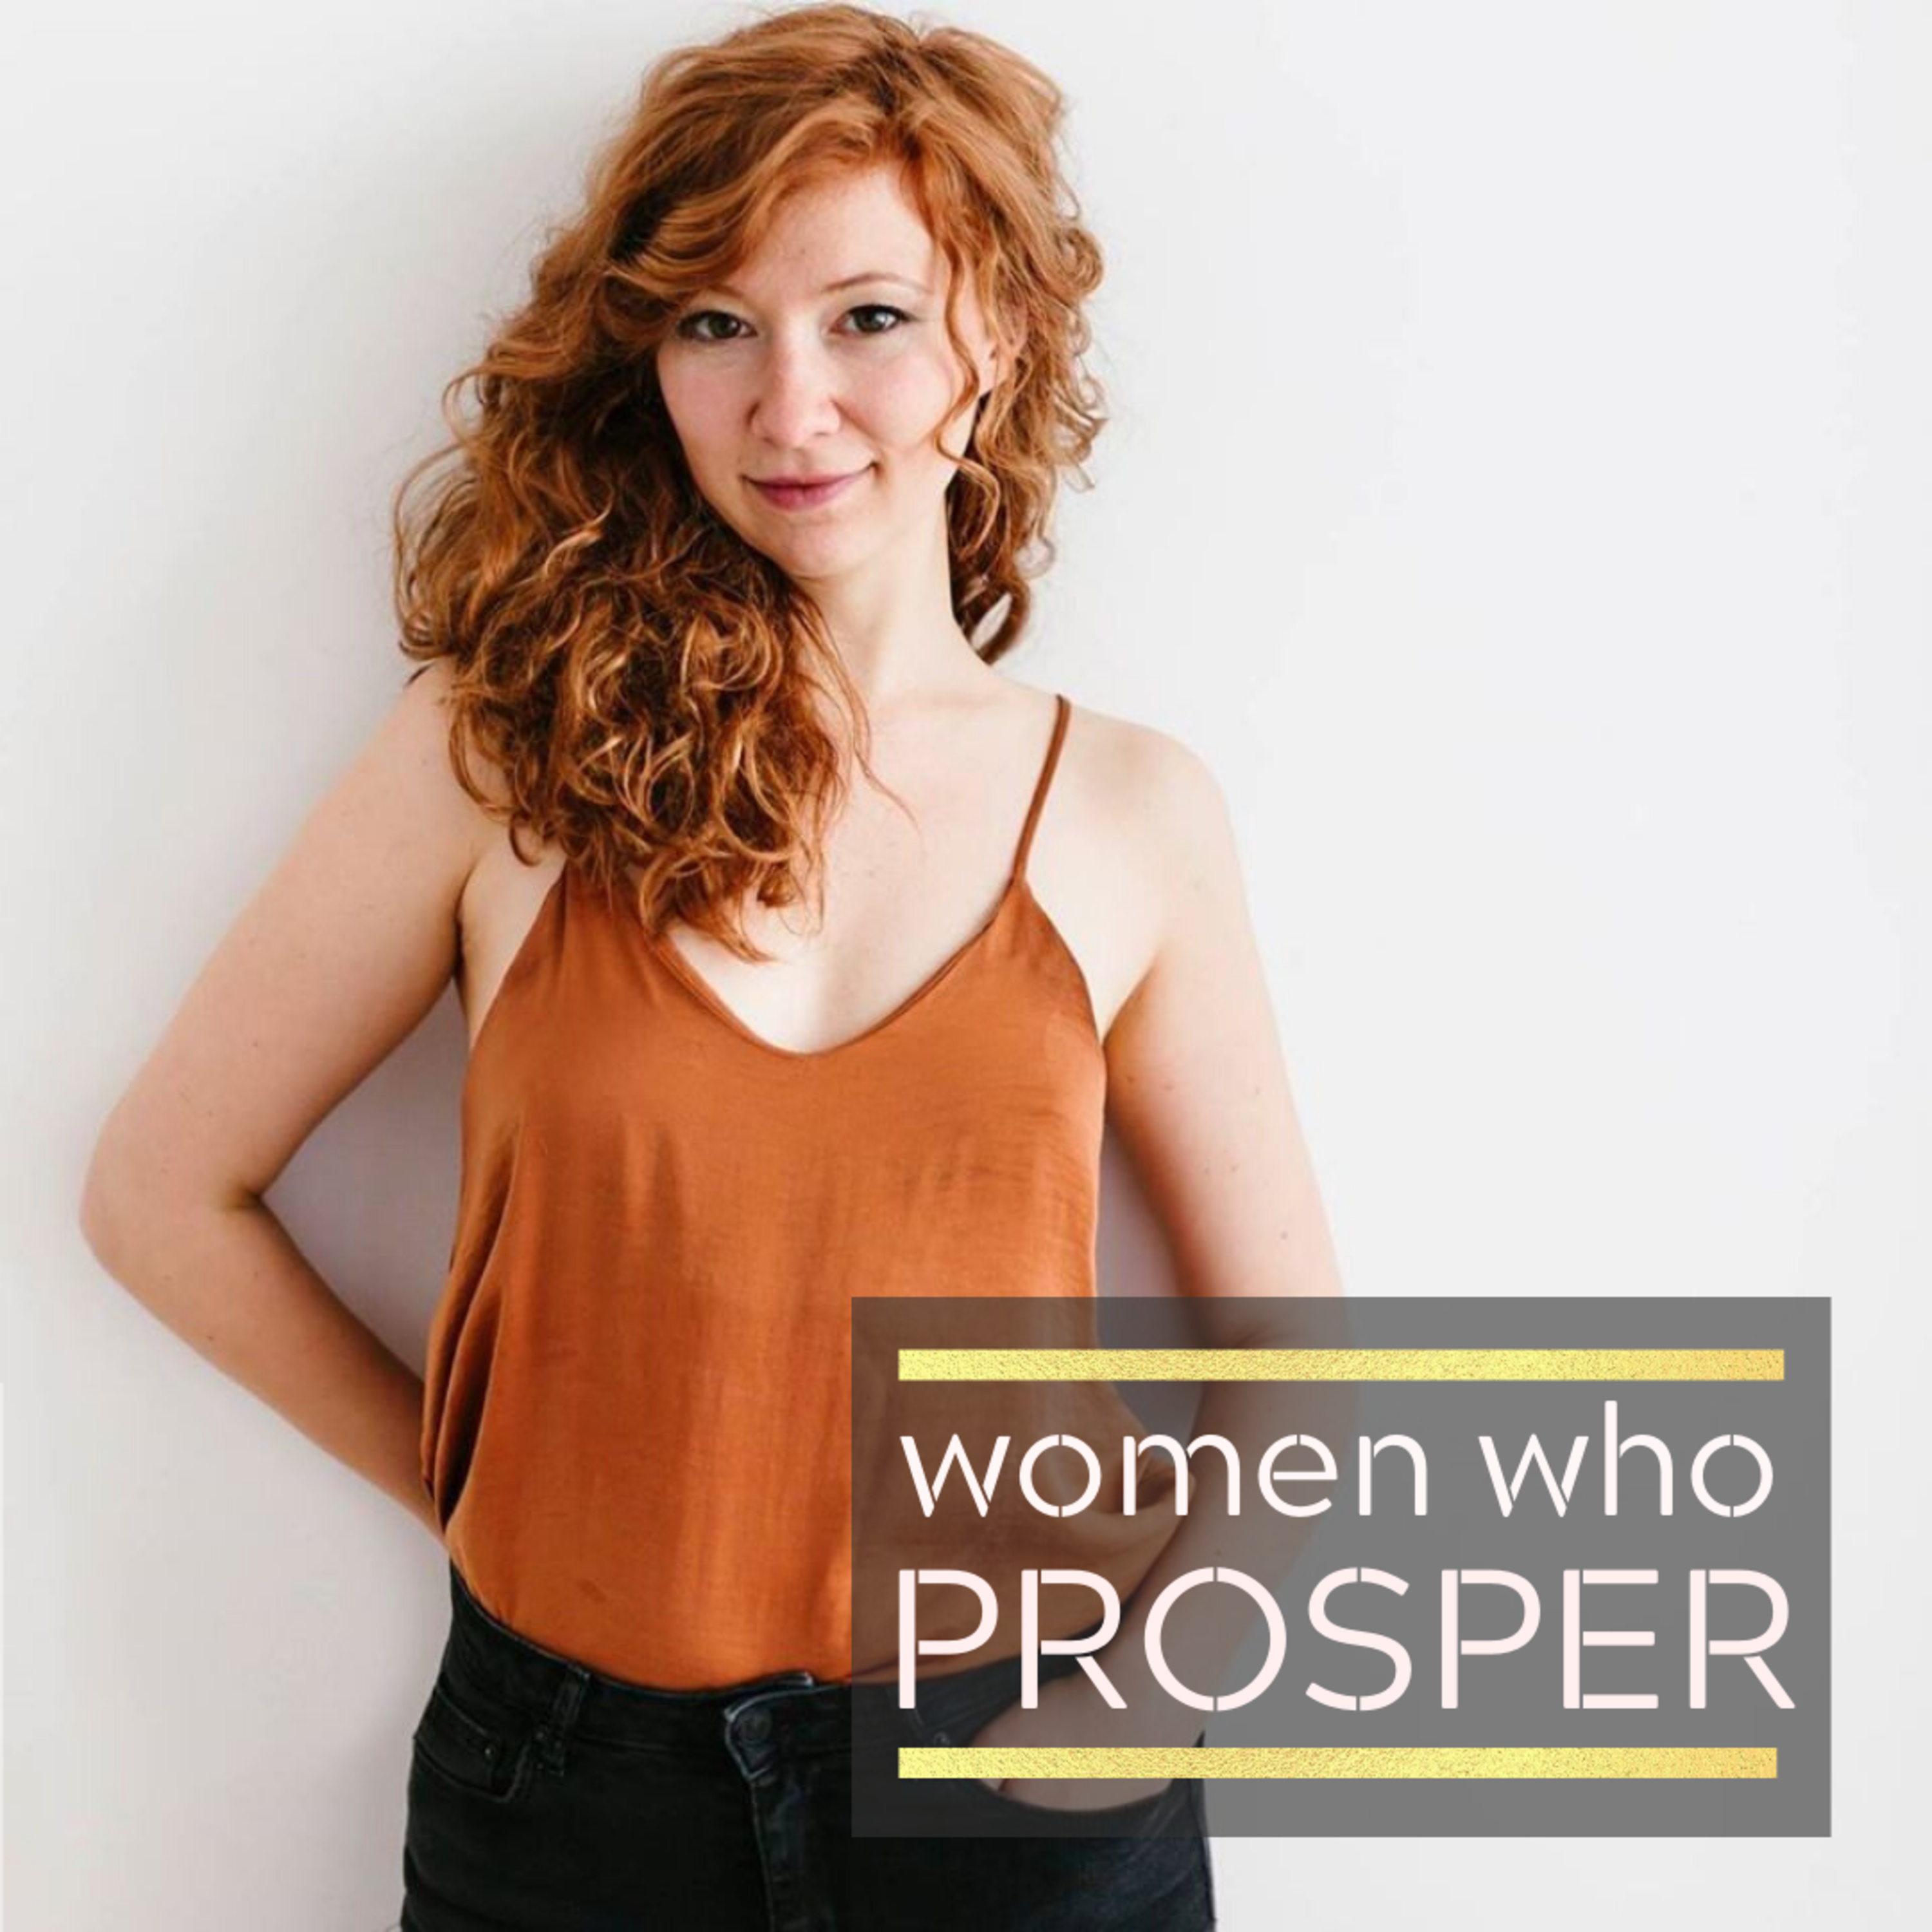 13. Intuitive eating, reclaiming pleasure and coming home to the female body w/ Isabelle Ysebaert